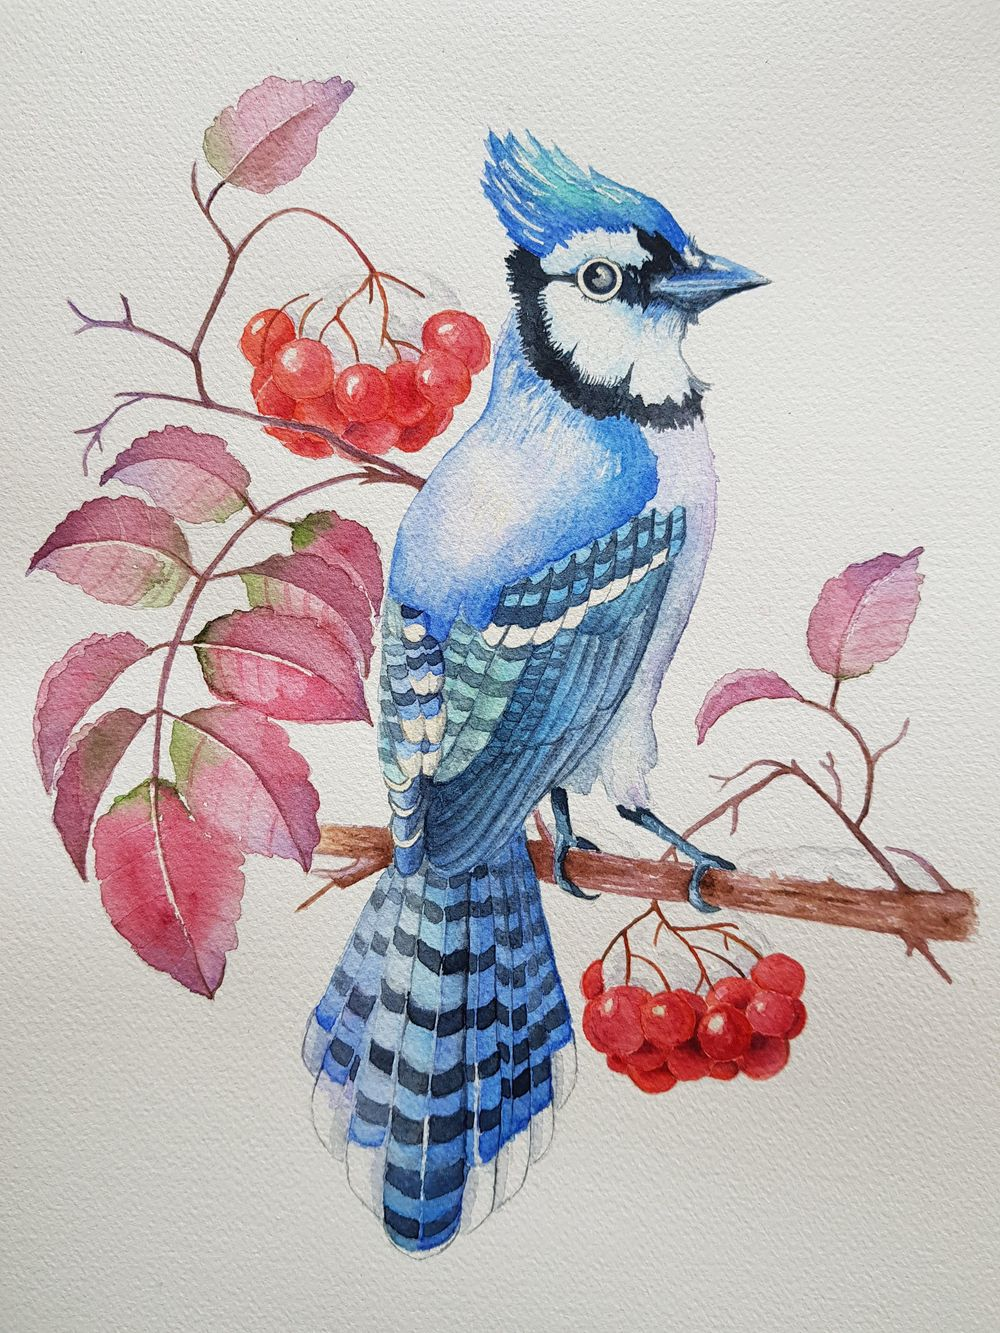 watercolor bluejay and rowan berries - image 1 - student project